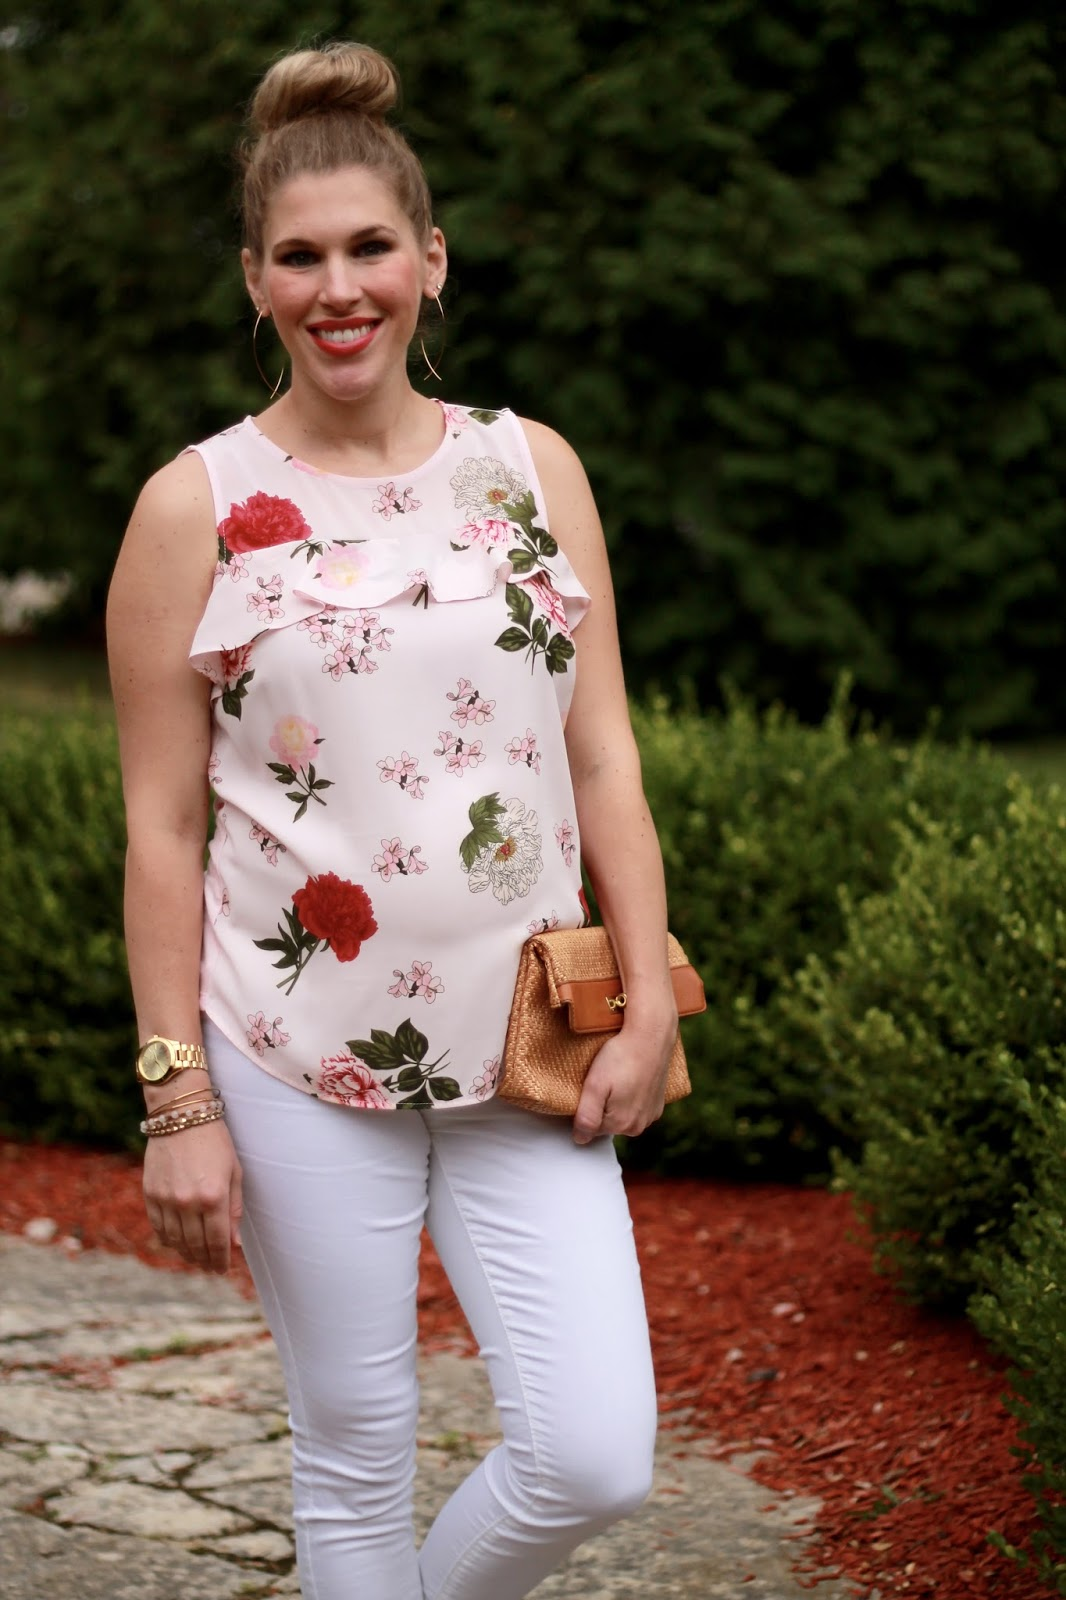 ruffled pink floral sleeveless top, white jeans, summer maternity outfit, blush lace up shoes, straw clutch